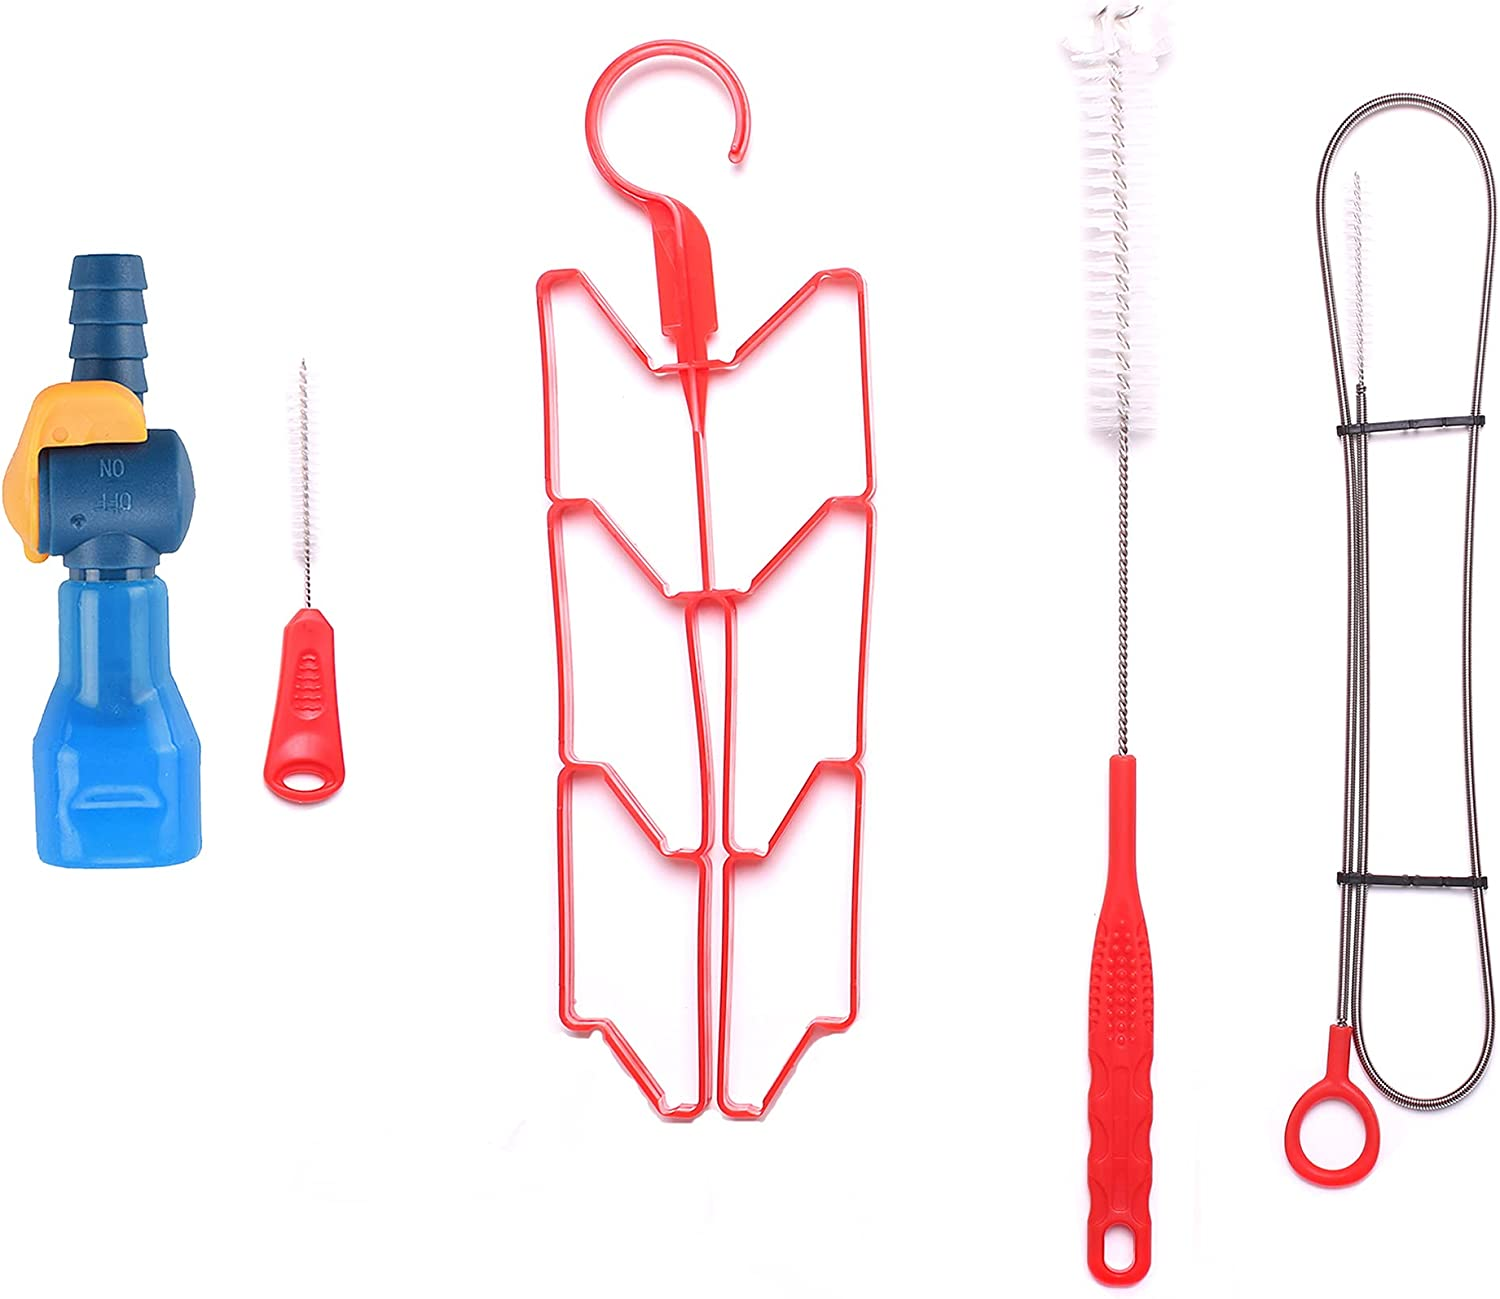 J.CARP Max 85% OFF ON-Off Switch Bite Valve Selling and selling Replacement Cle Nozzle Tube with